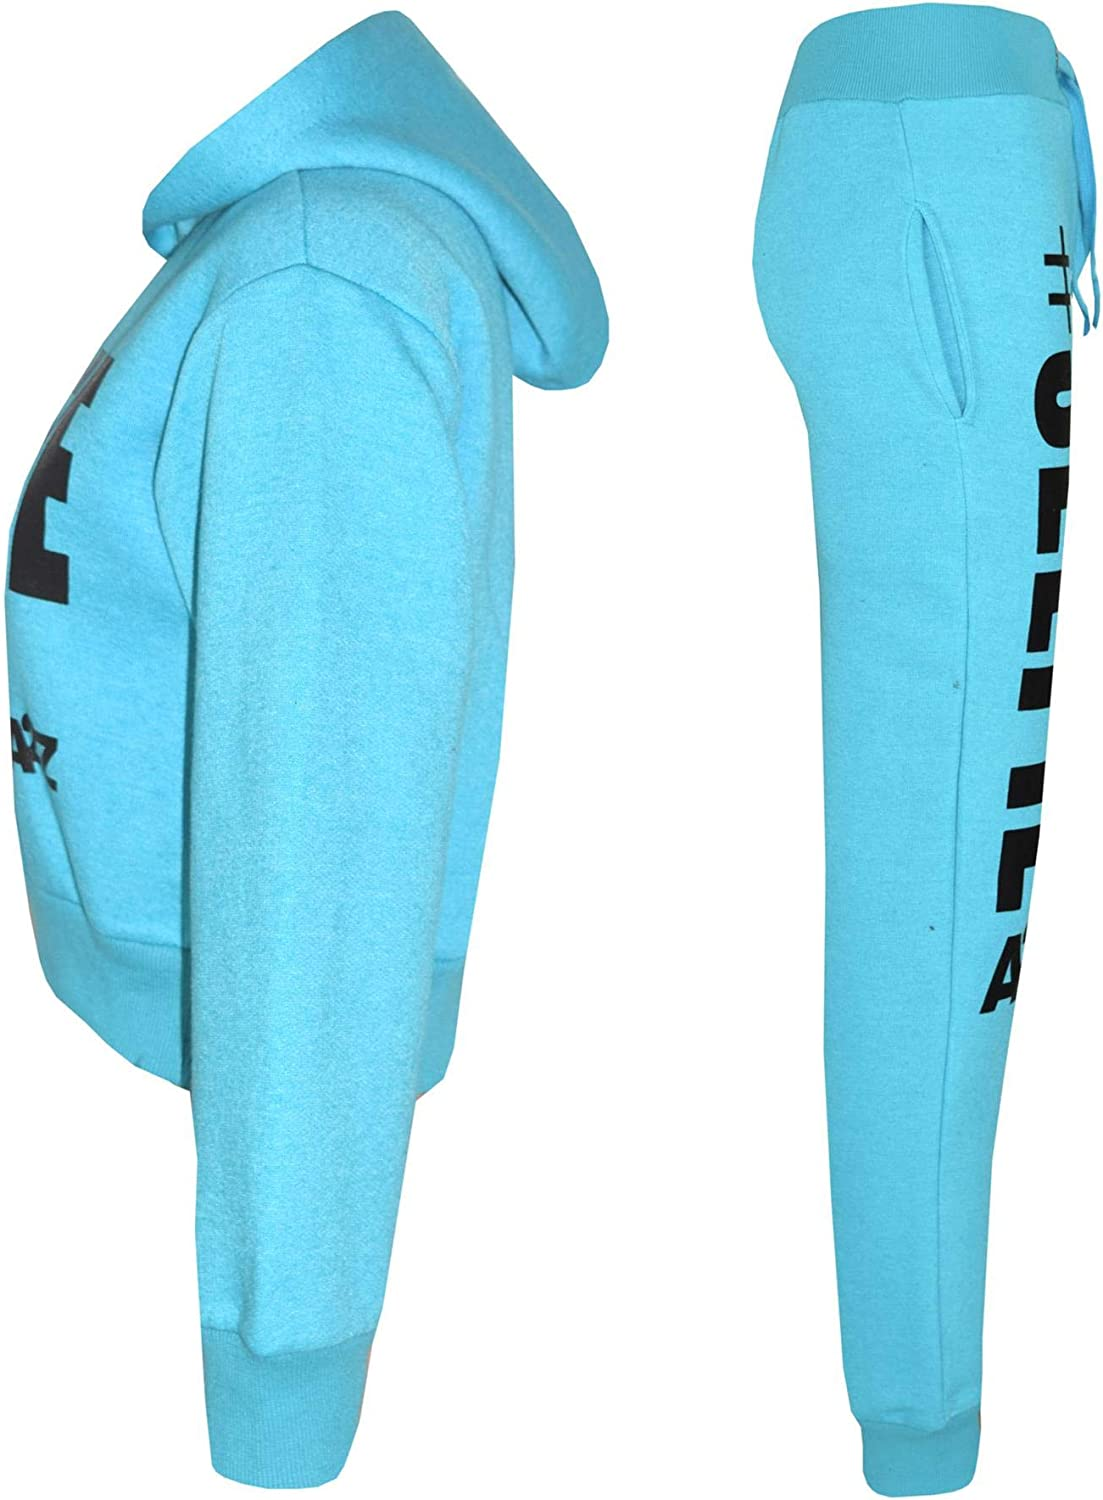 Kids Girls Tracksuit Designer #Selfie Hooded Crop Top /& Bottom Jog Suit 5-13 Yr